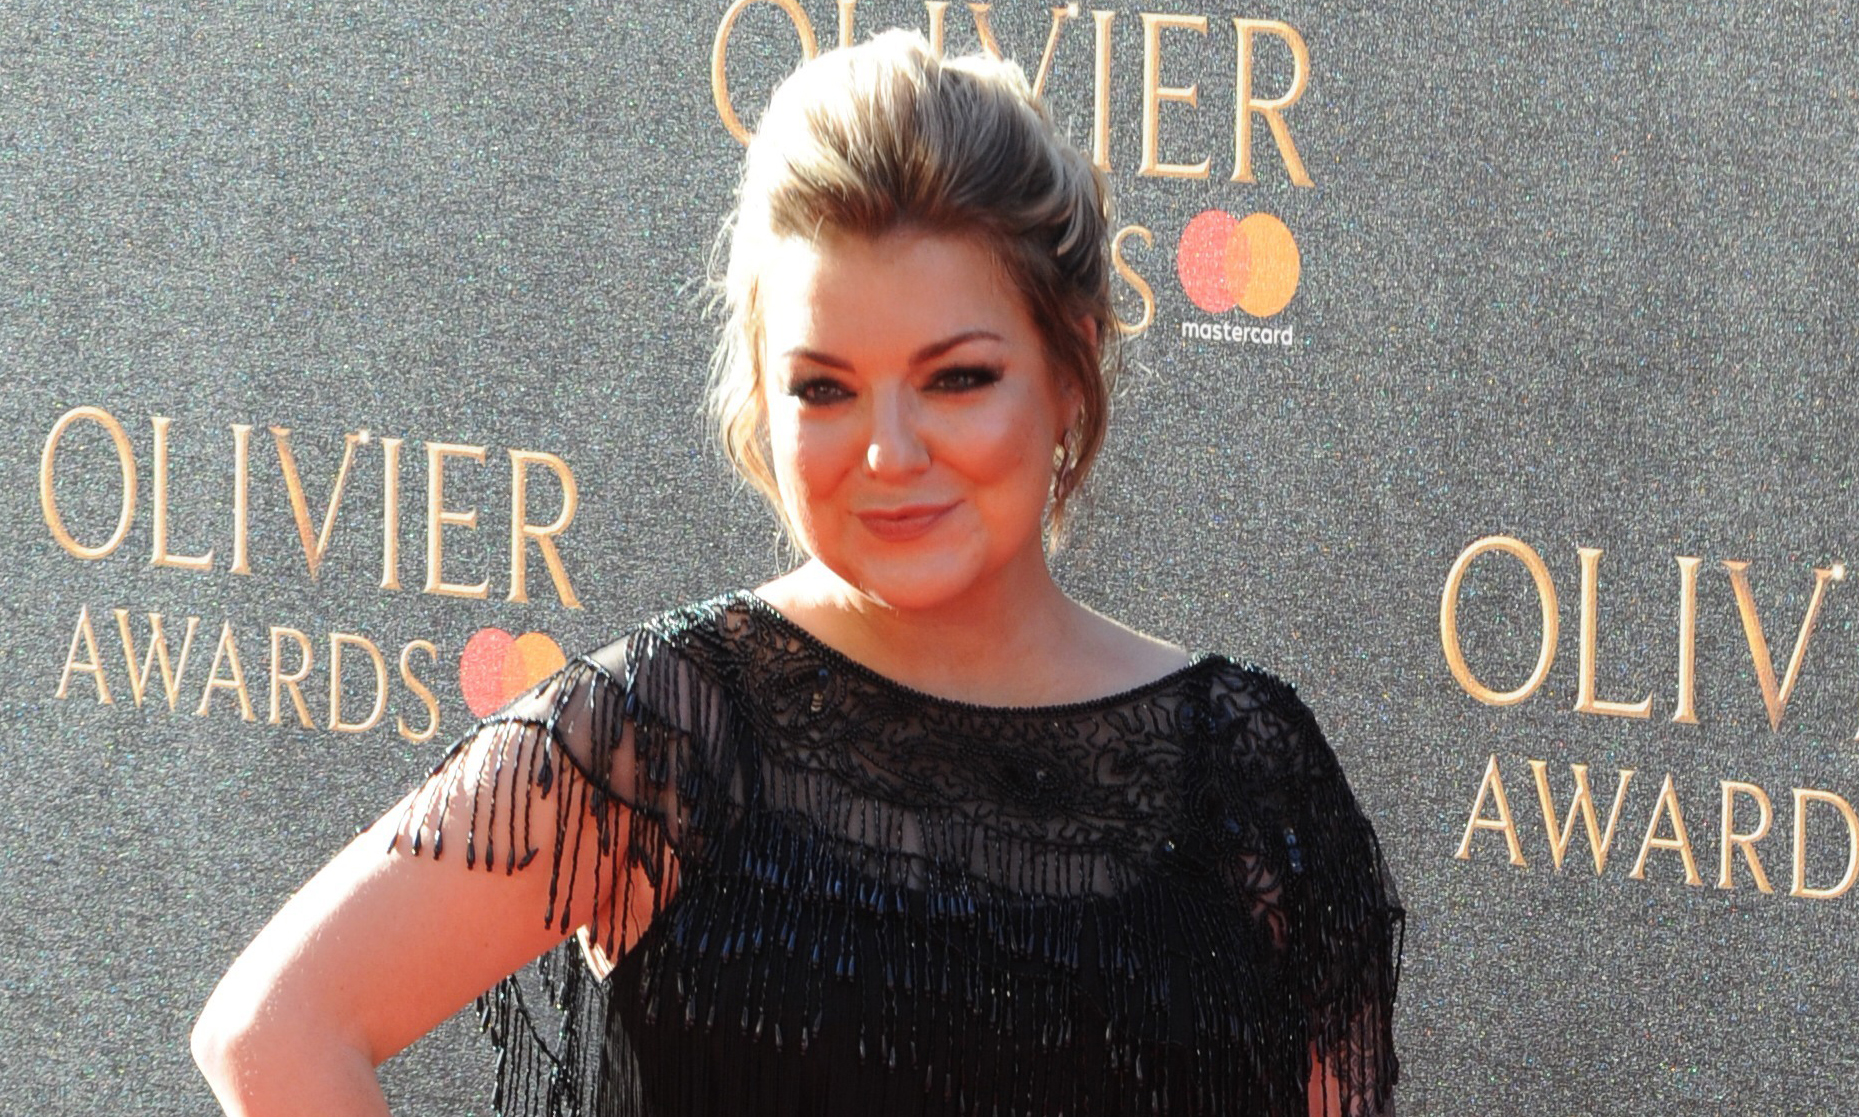 Sheridan Smith opens up about her struggles with grief and mental health